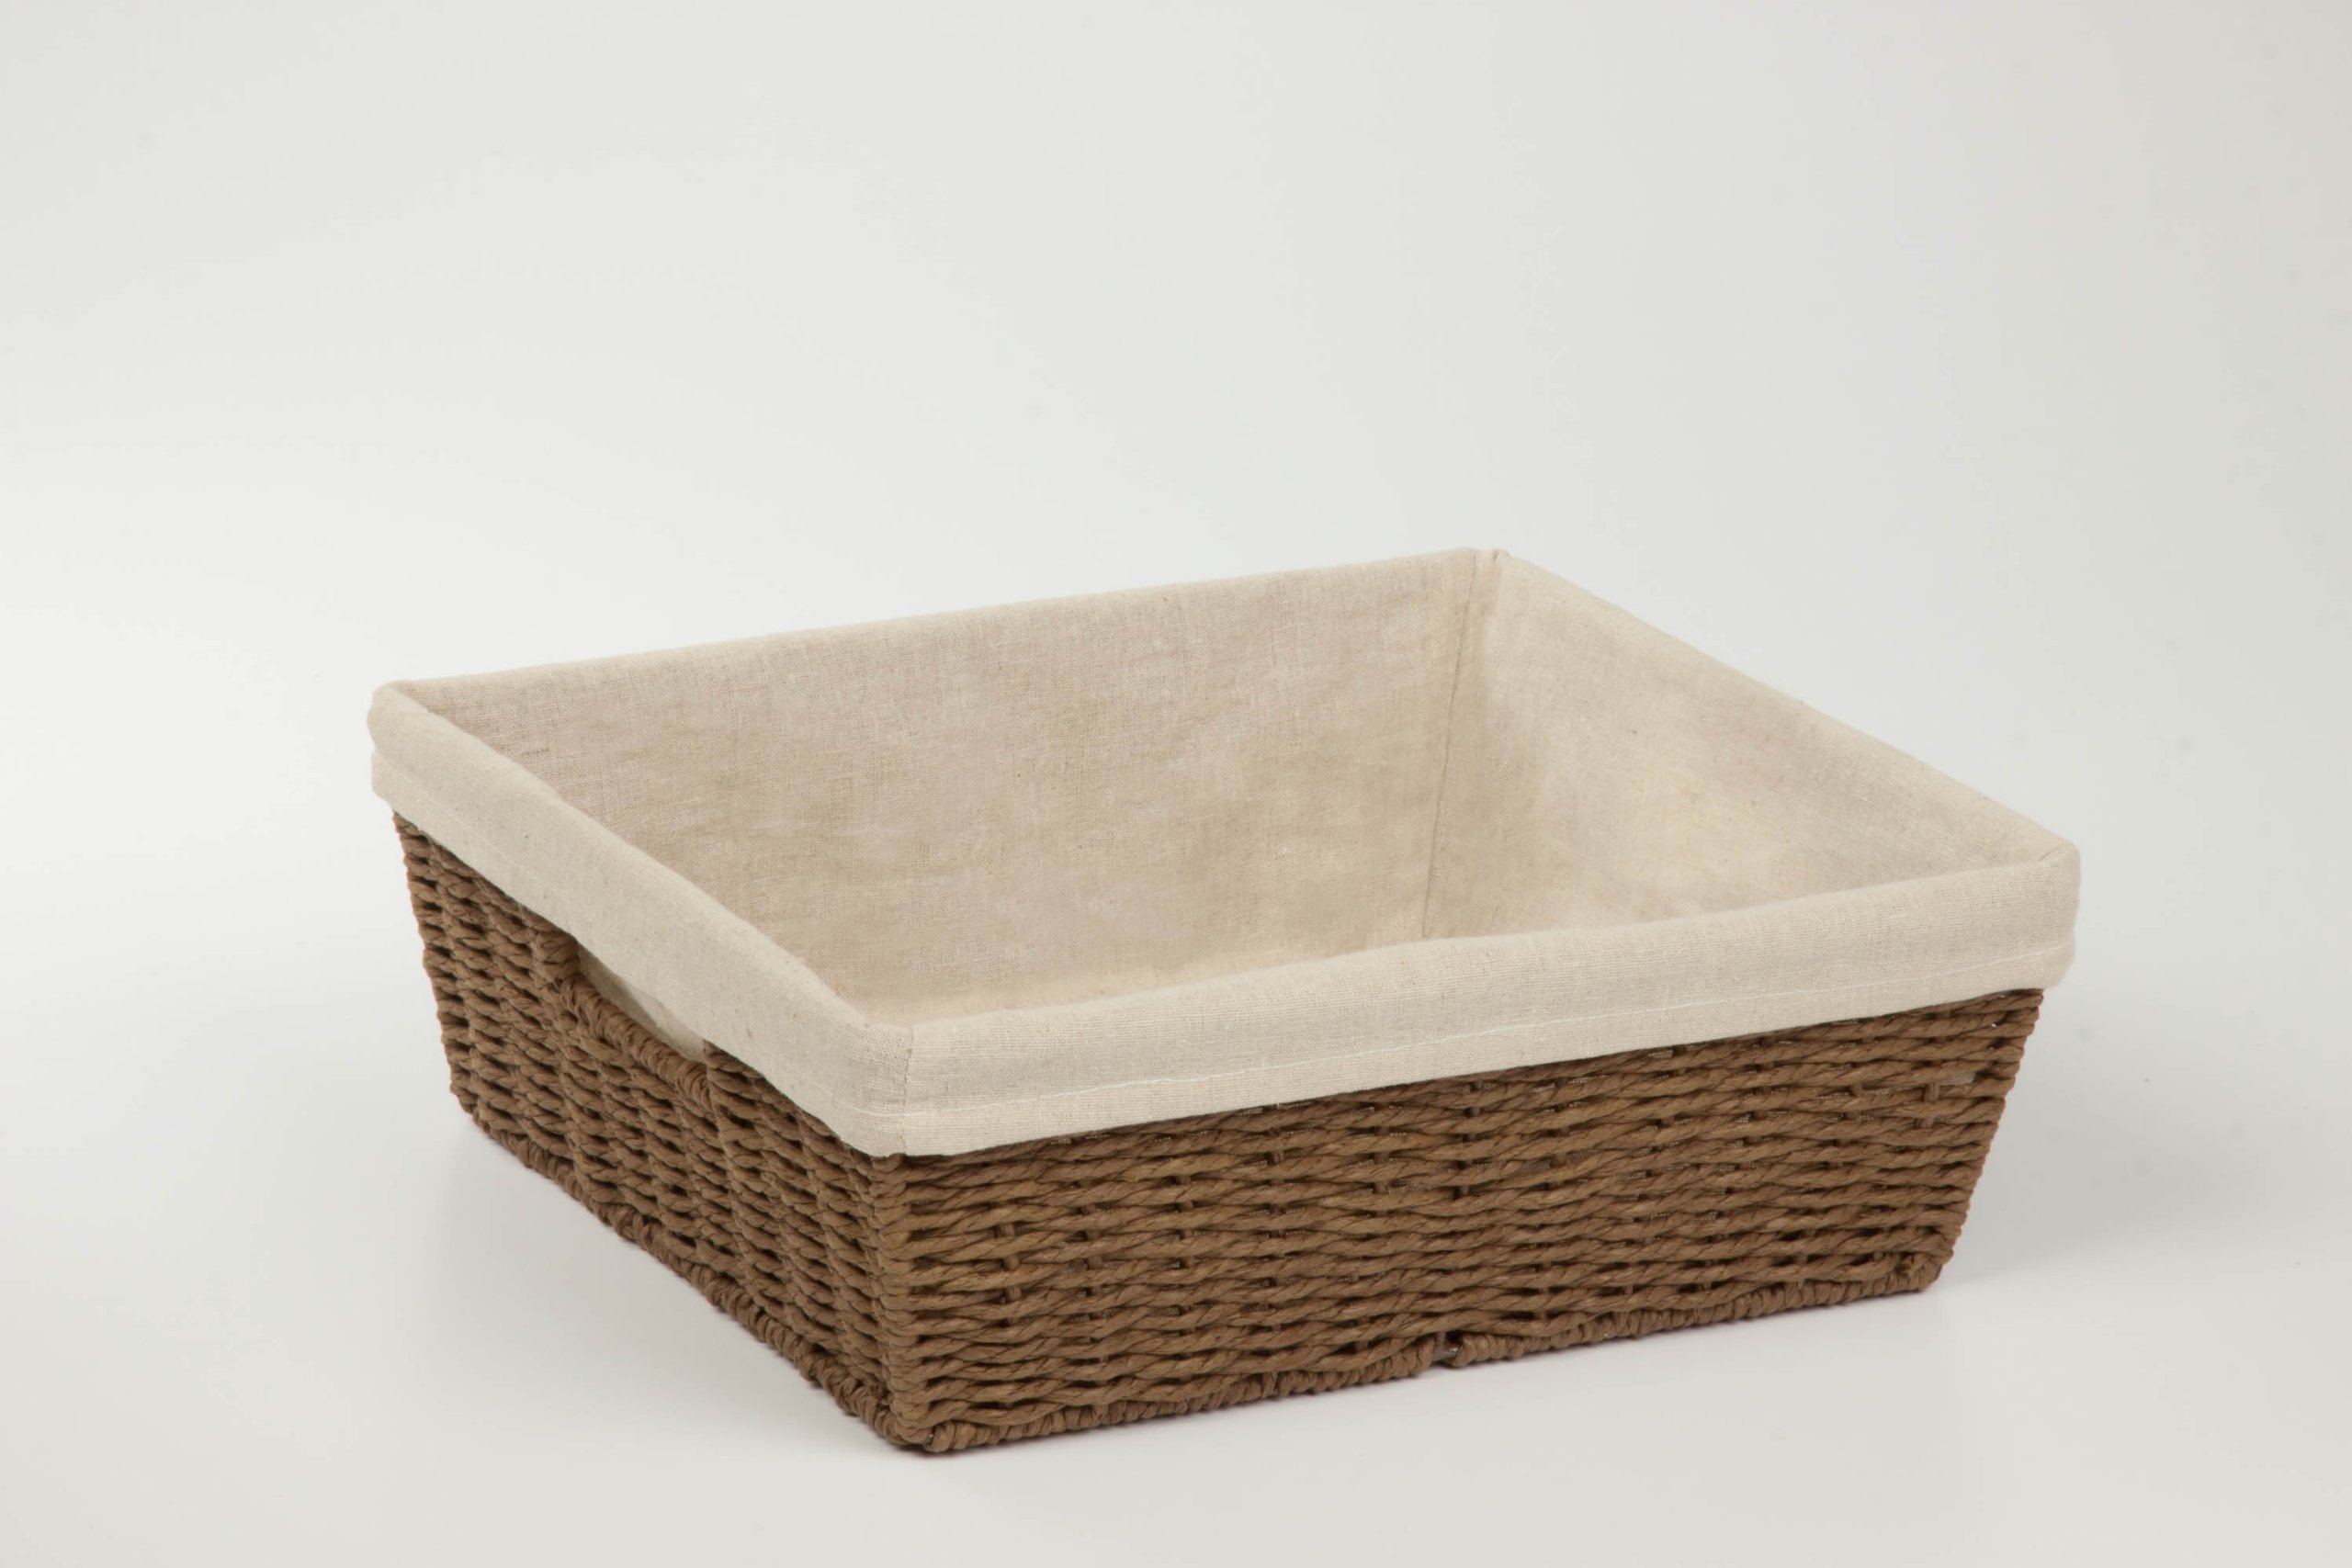 Honey-Can-Do STO-03564 Parchment Cord Basket with Handles and Liner, Brown, 12.99 x 15 x 5 inches